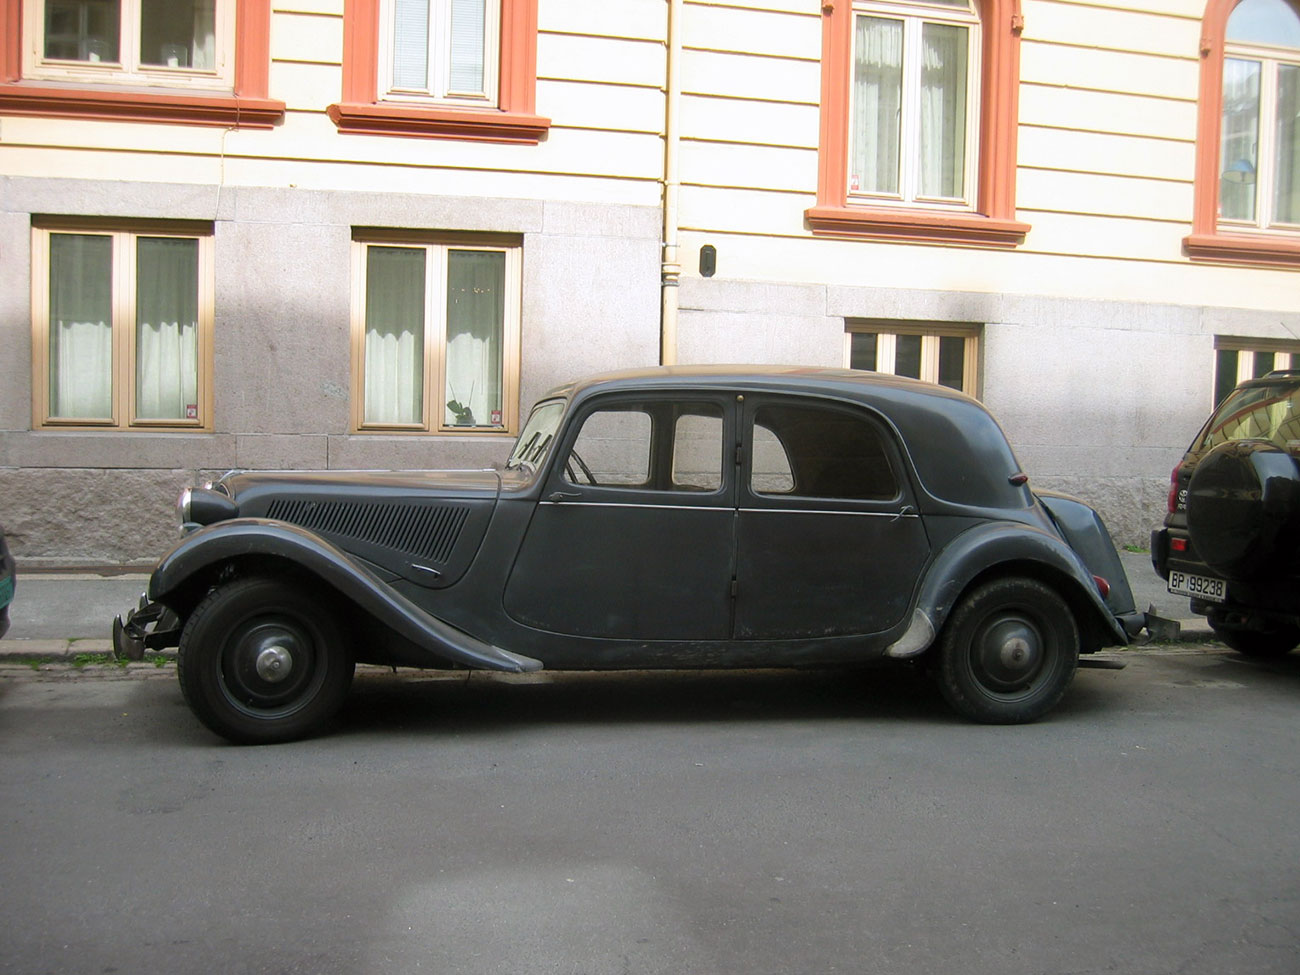 1954 Citroën 11bl Traction Avant Sedan